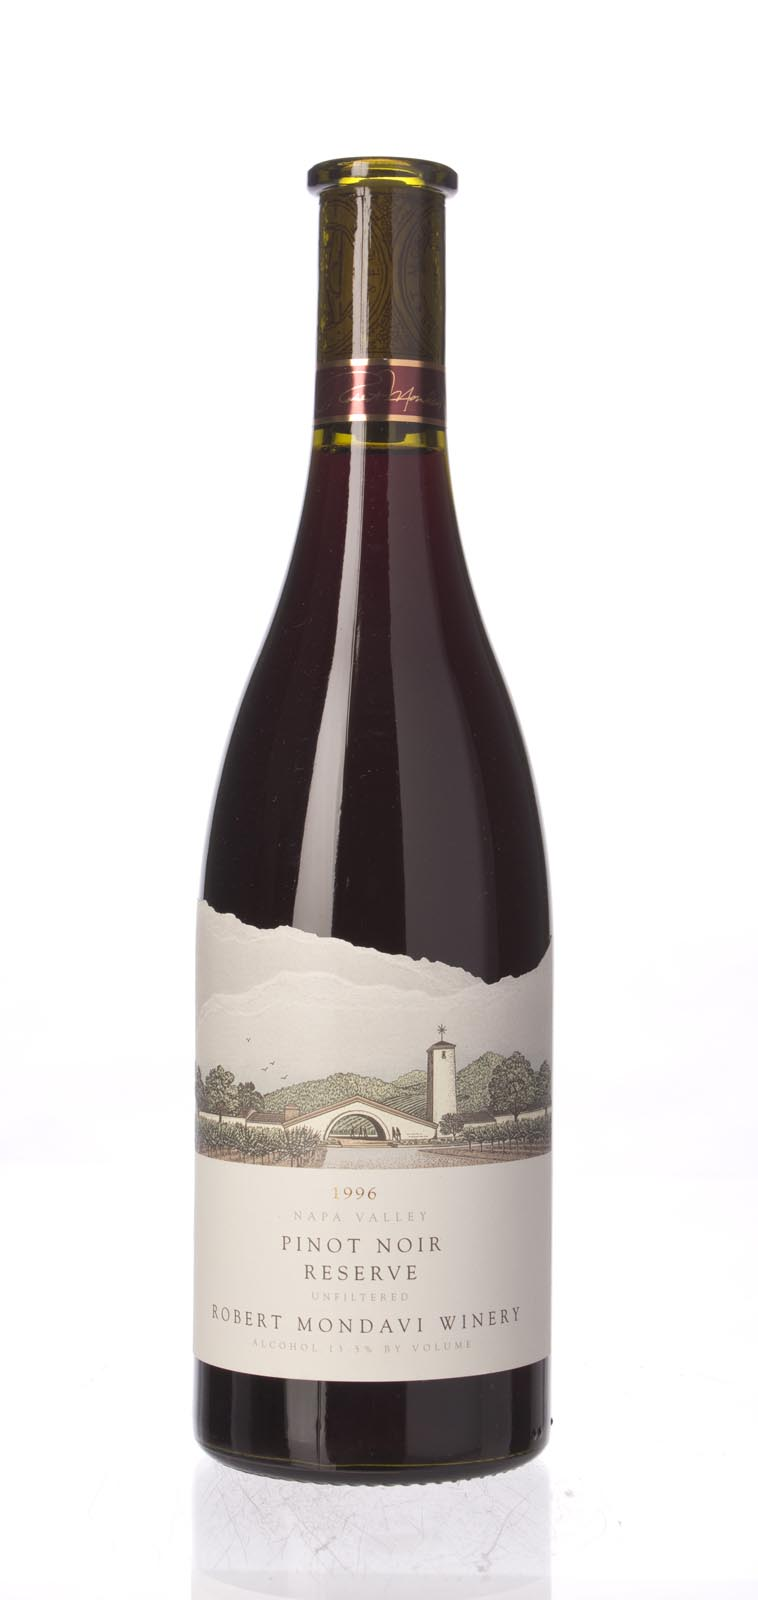 Robert Mondavi Pinot Noir Reserve 1996, 750mL (WA89) from The BPW - Merchants of rare and fine wines.